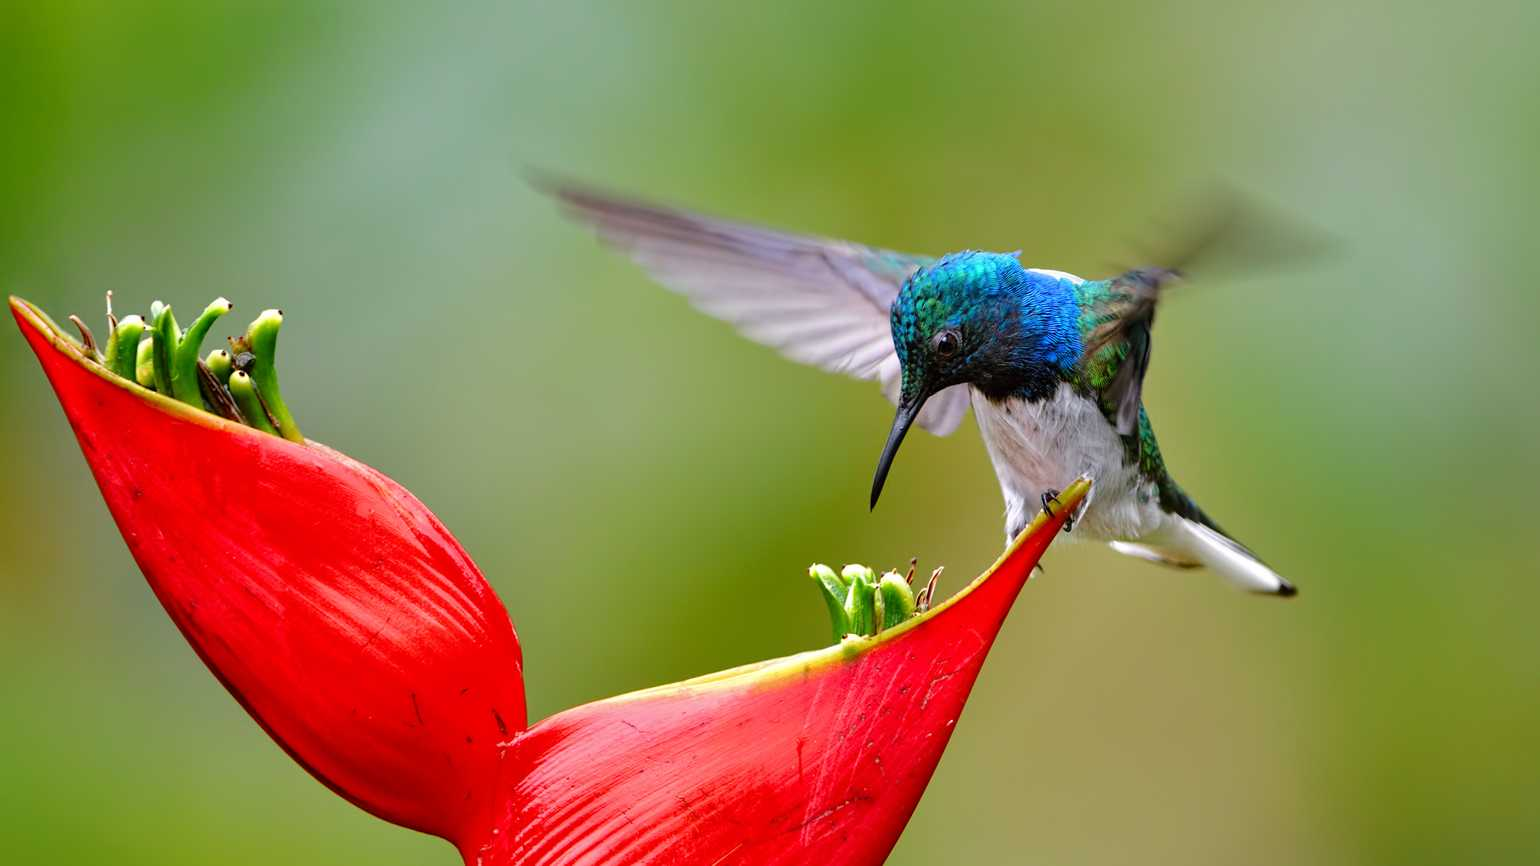 Close-up of a white-necked jacobin drinking nectar from a flower. This species is also known as great jacobin or collared hummingbird.